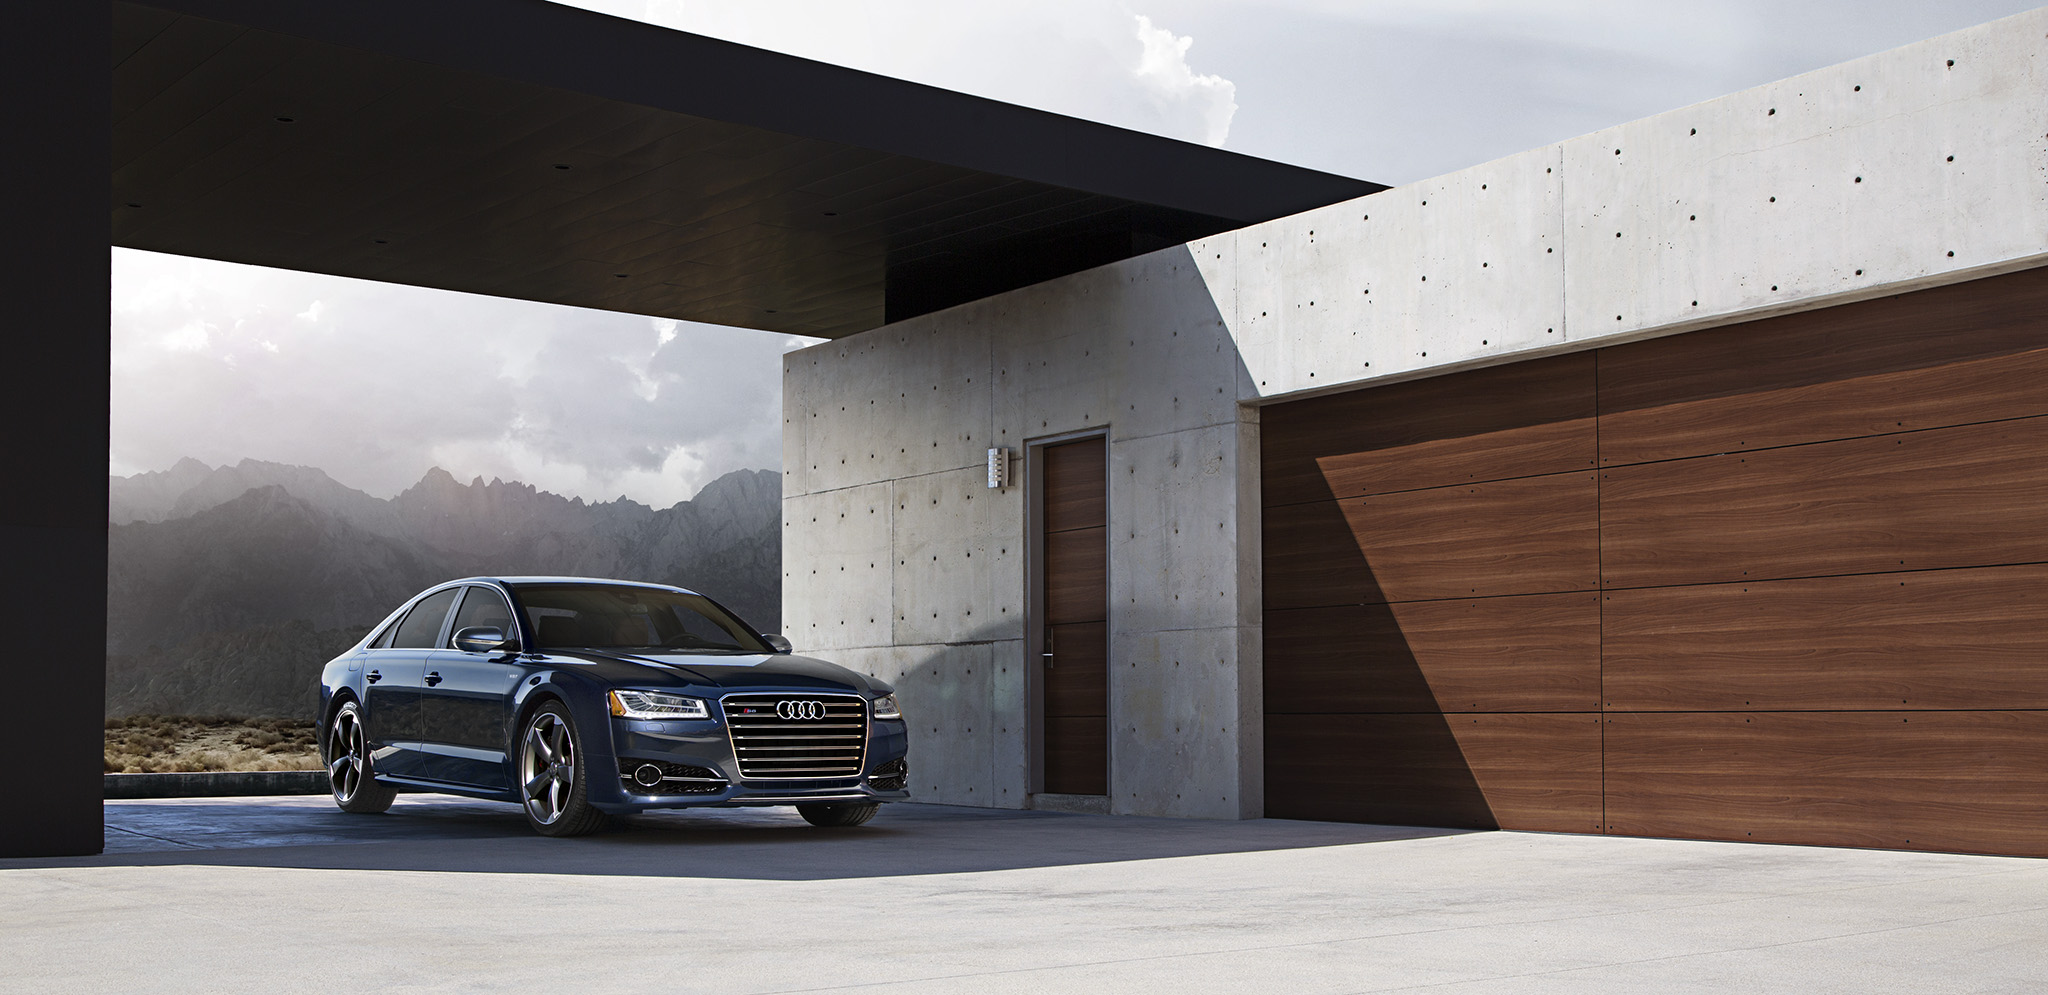 Audi_S8_front34_fnl_lay_rgb